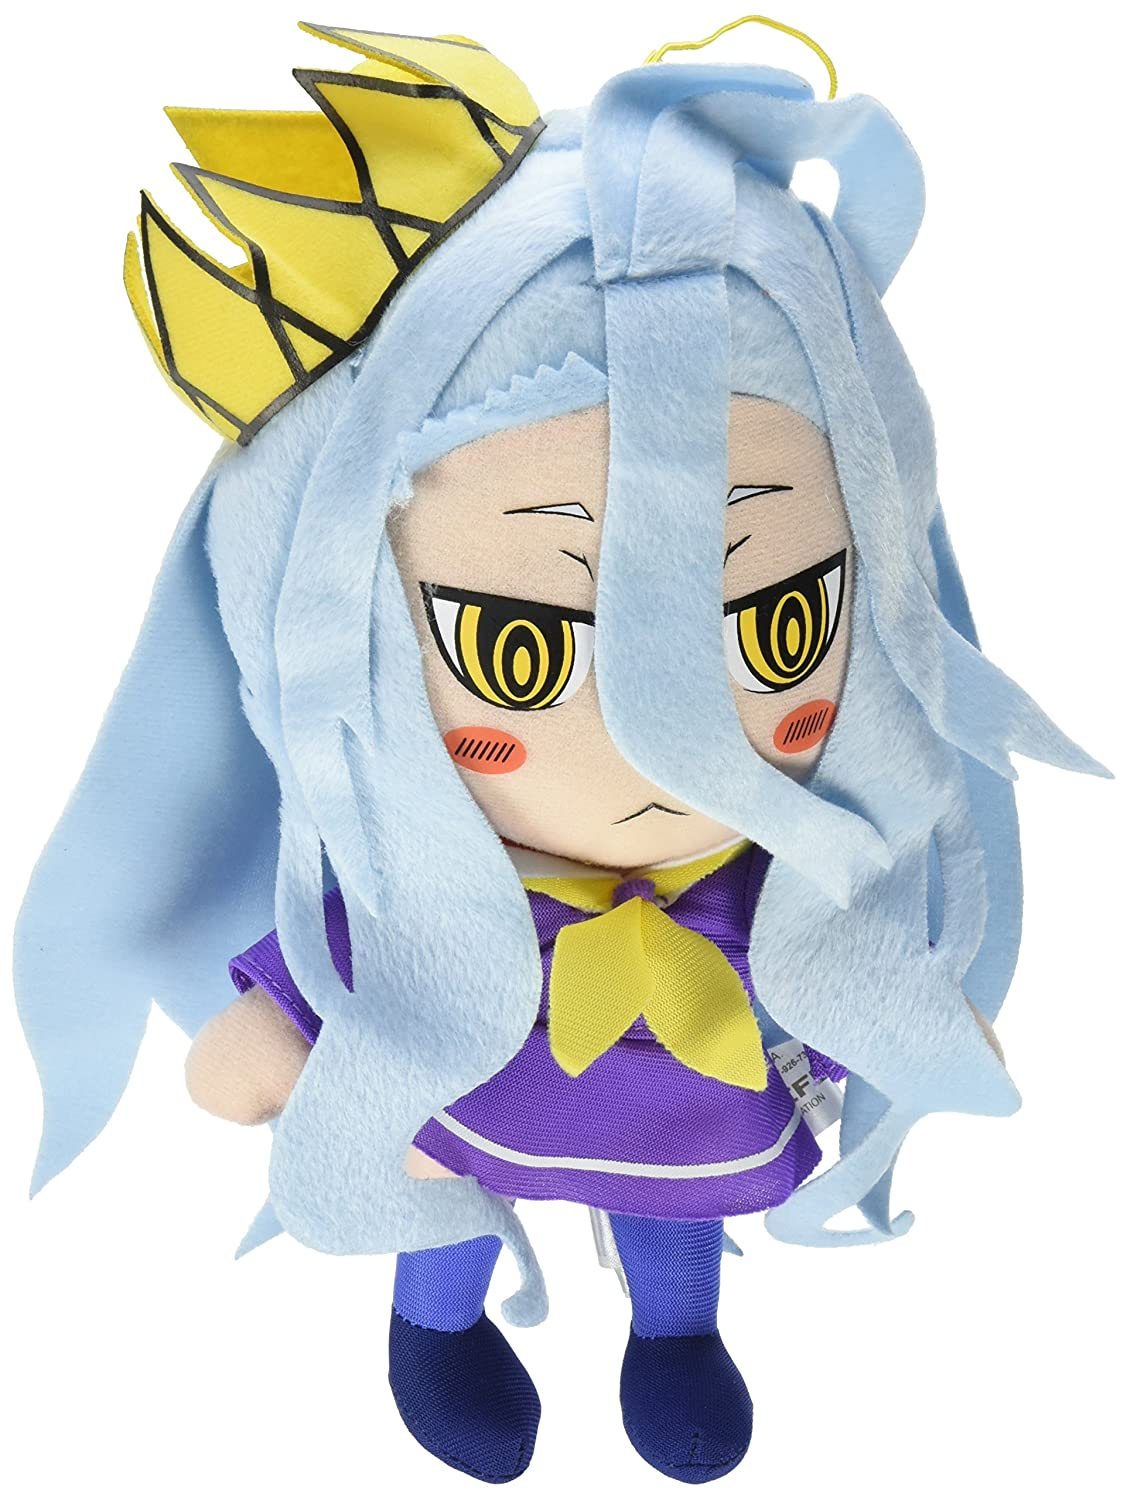 Amazon.com: GE Animation GE-52758 No Game No Life Shiro Stuffed Plush: Toys & Games